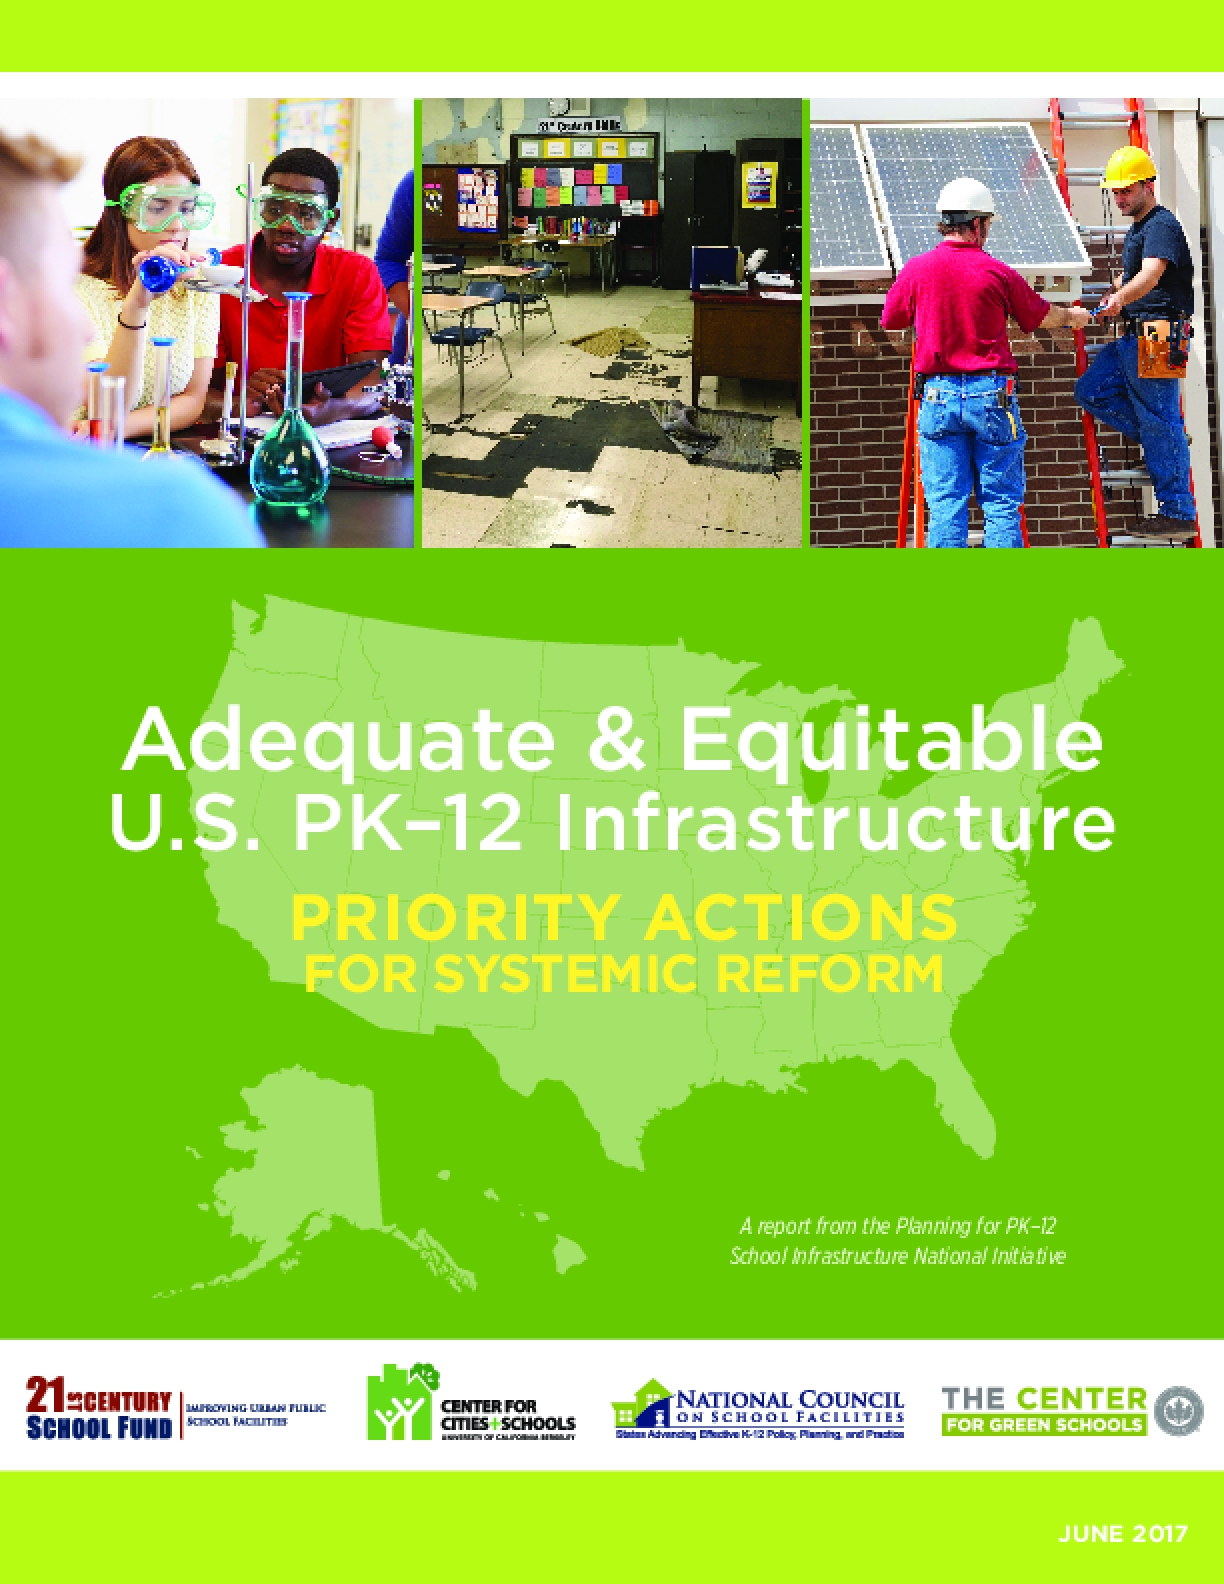 Adequate & Equitable U.S. PK–12 Infrastructure: Priority Actions for Systemic Reform